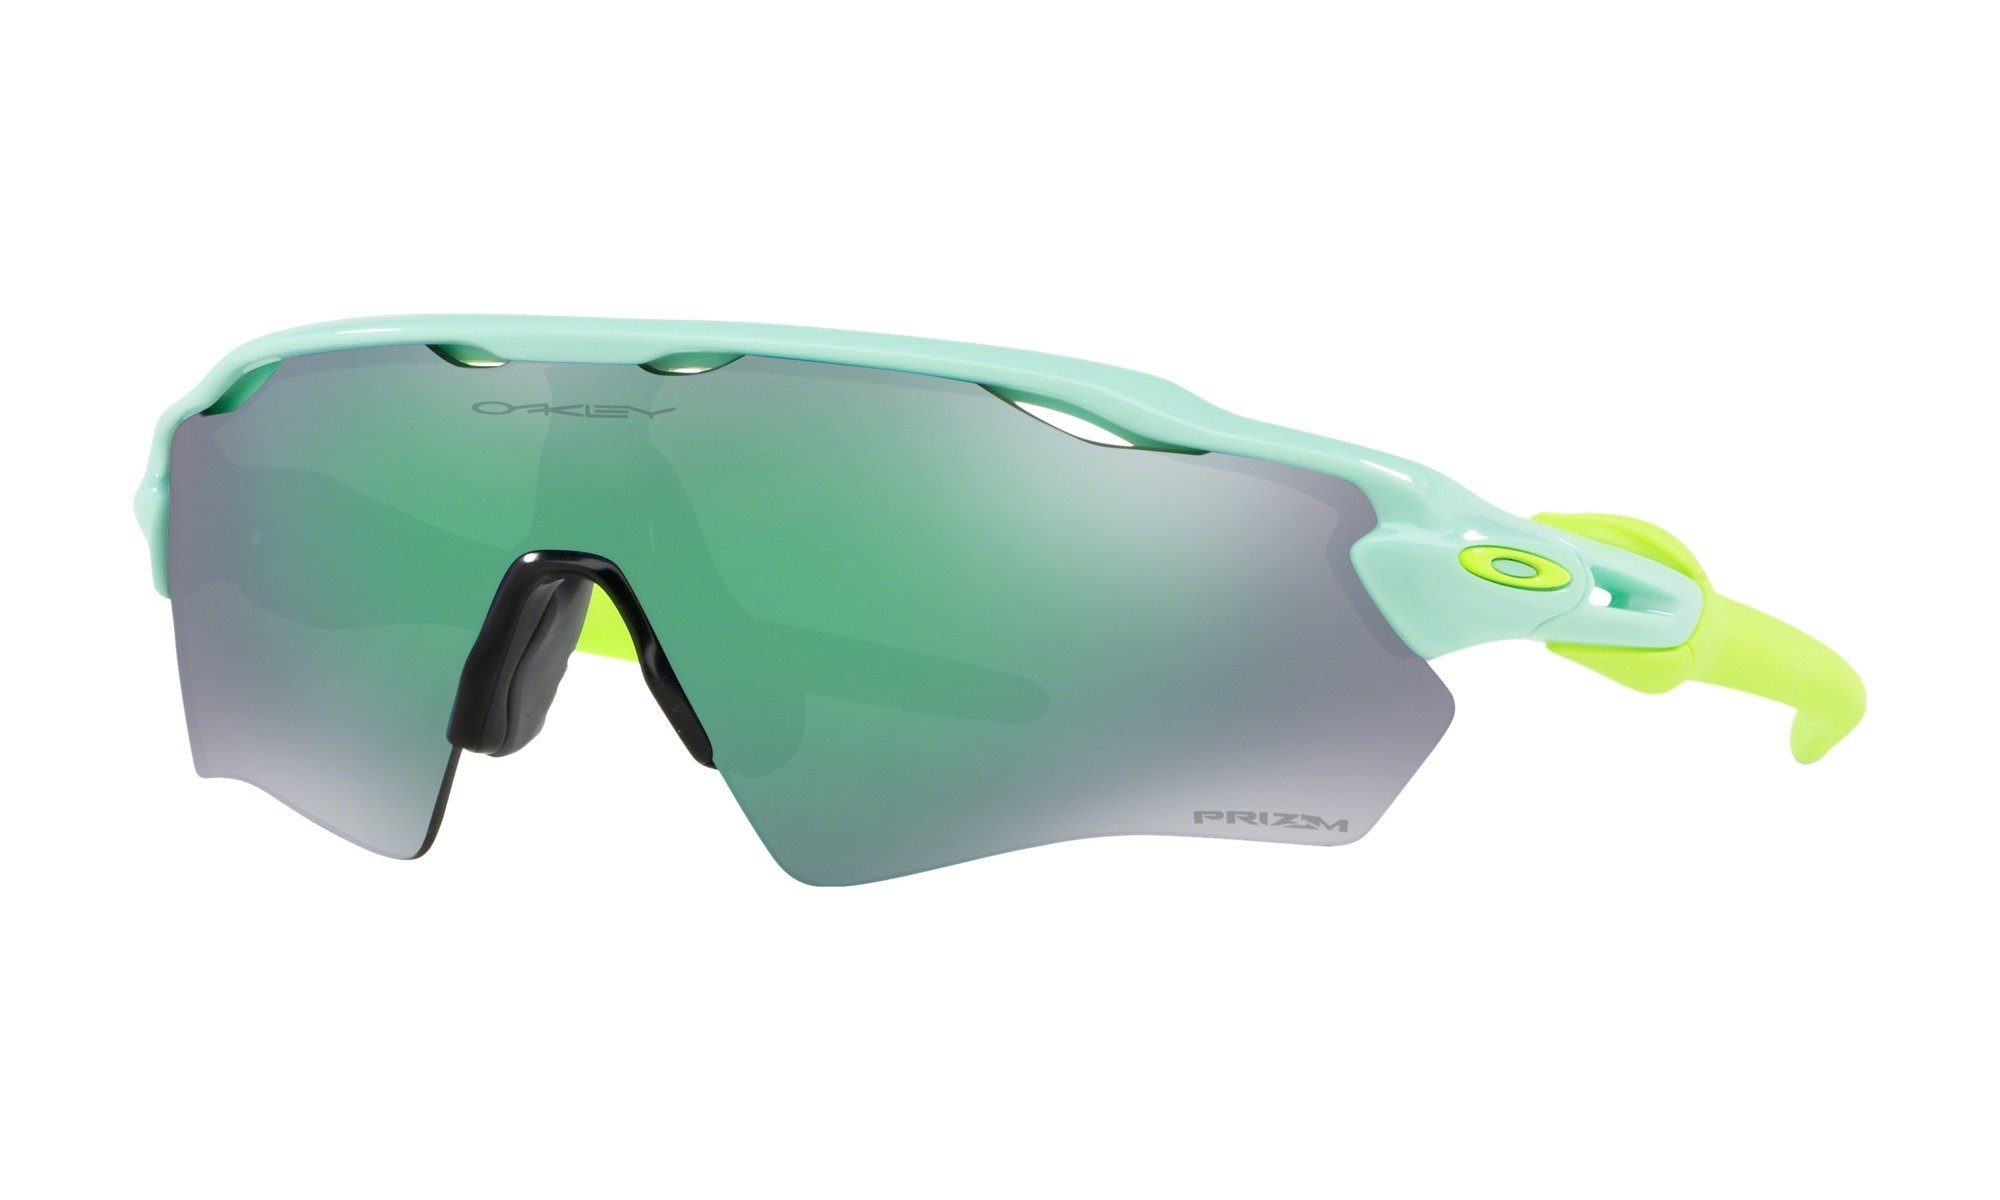 Oakley Radar EV Path Glasses w/ Prizm Lens - Cycles Galleria Melbourne